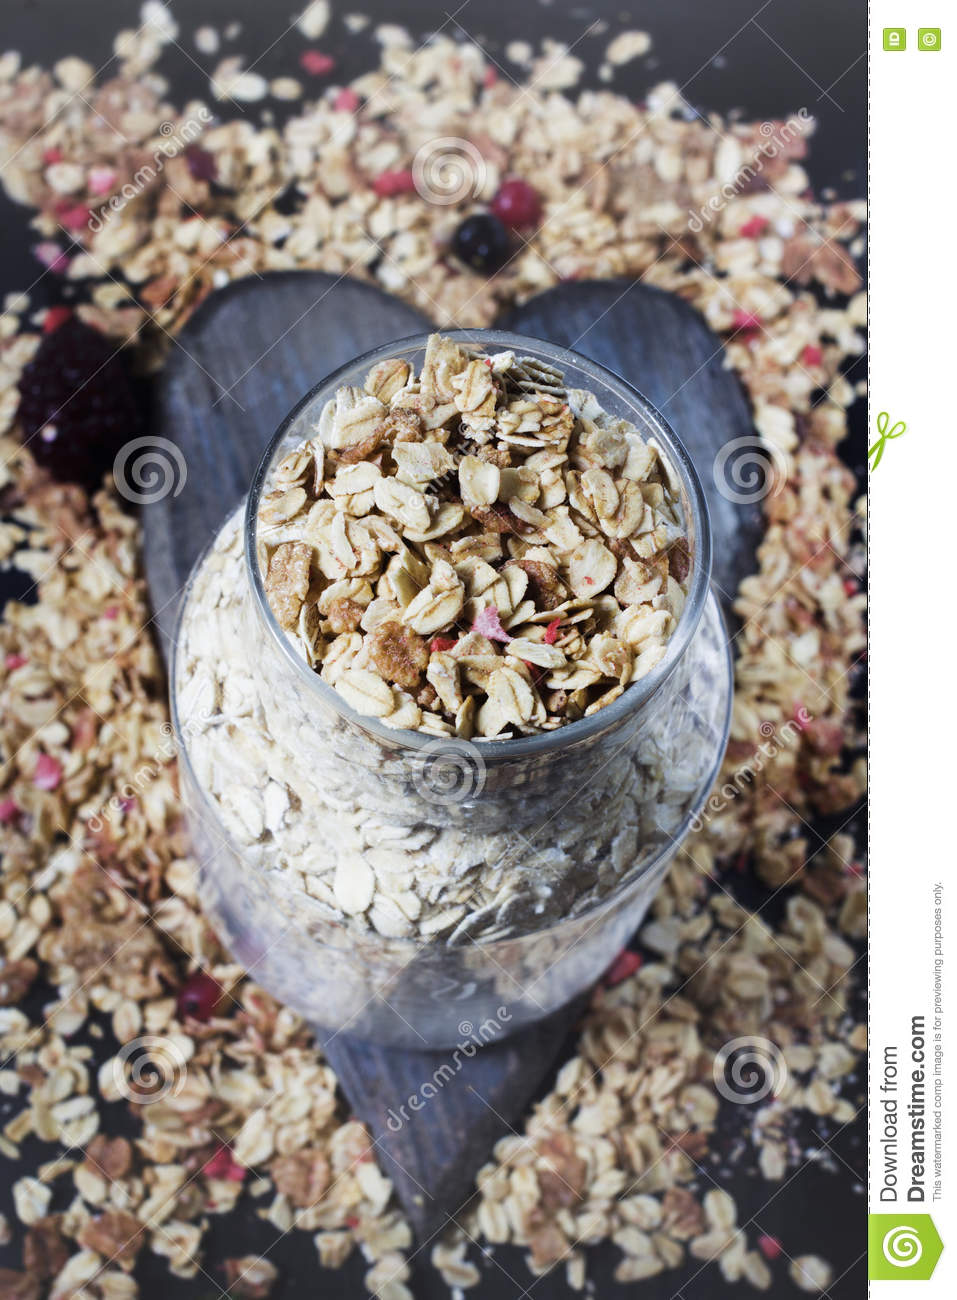 Ingredients for cooking healthy breakfast. Nuts, oat flakes, dried fruits, honey, granola, wooden heart .